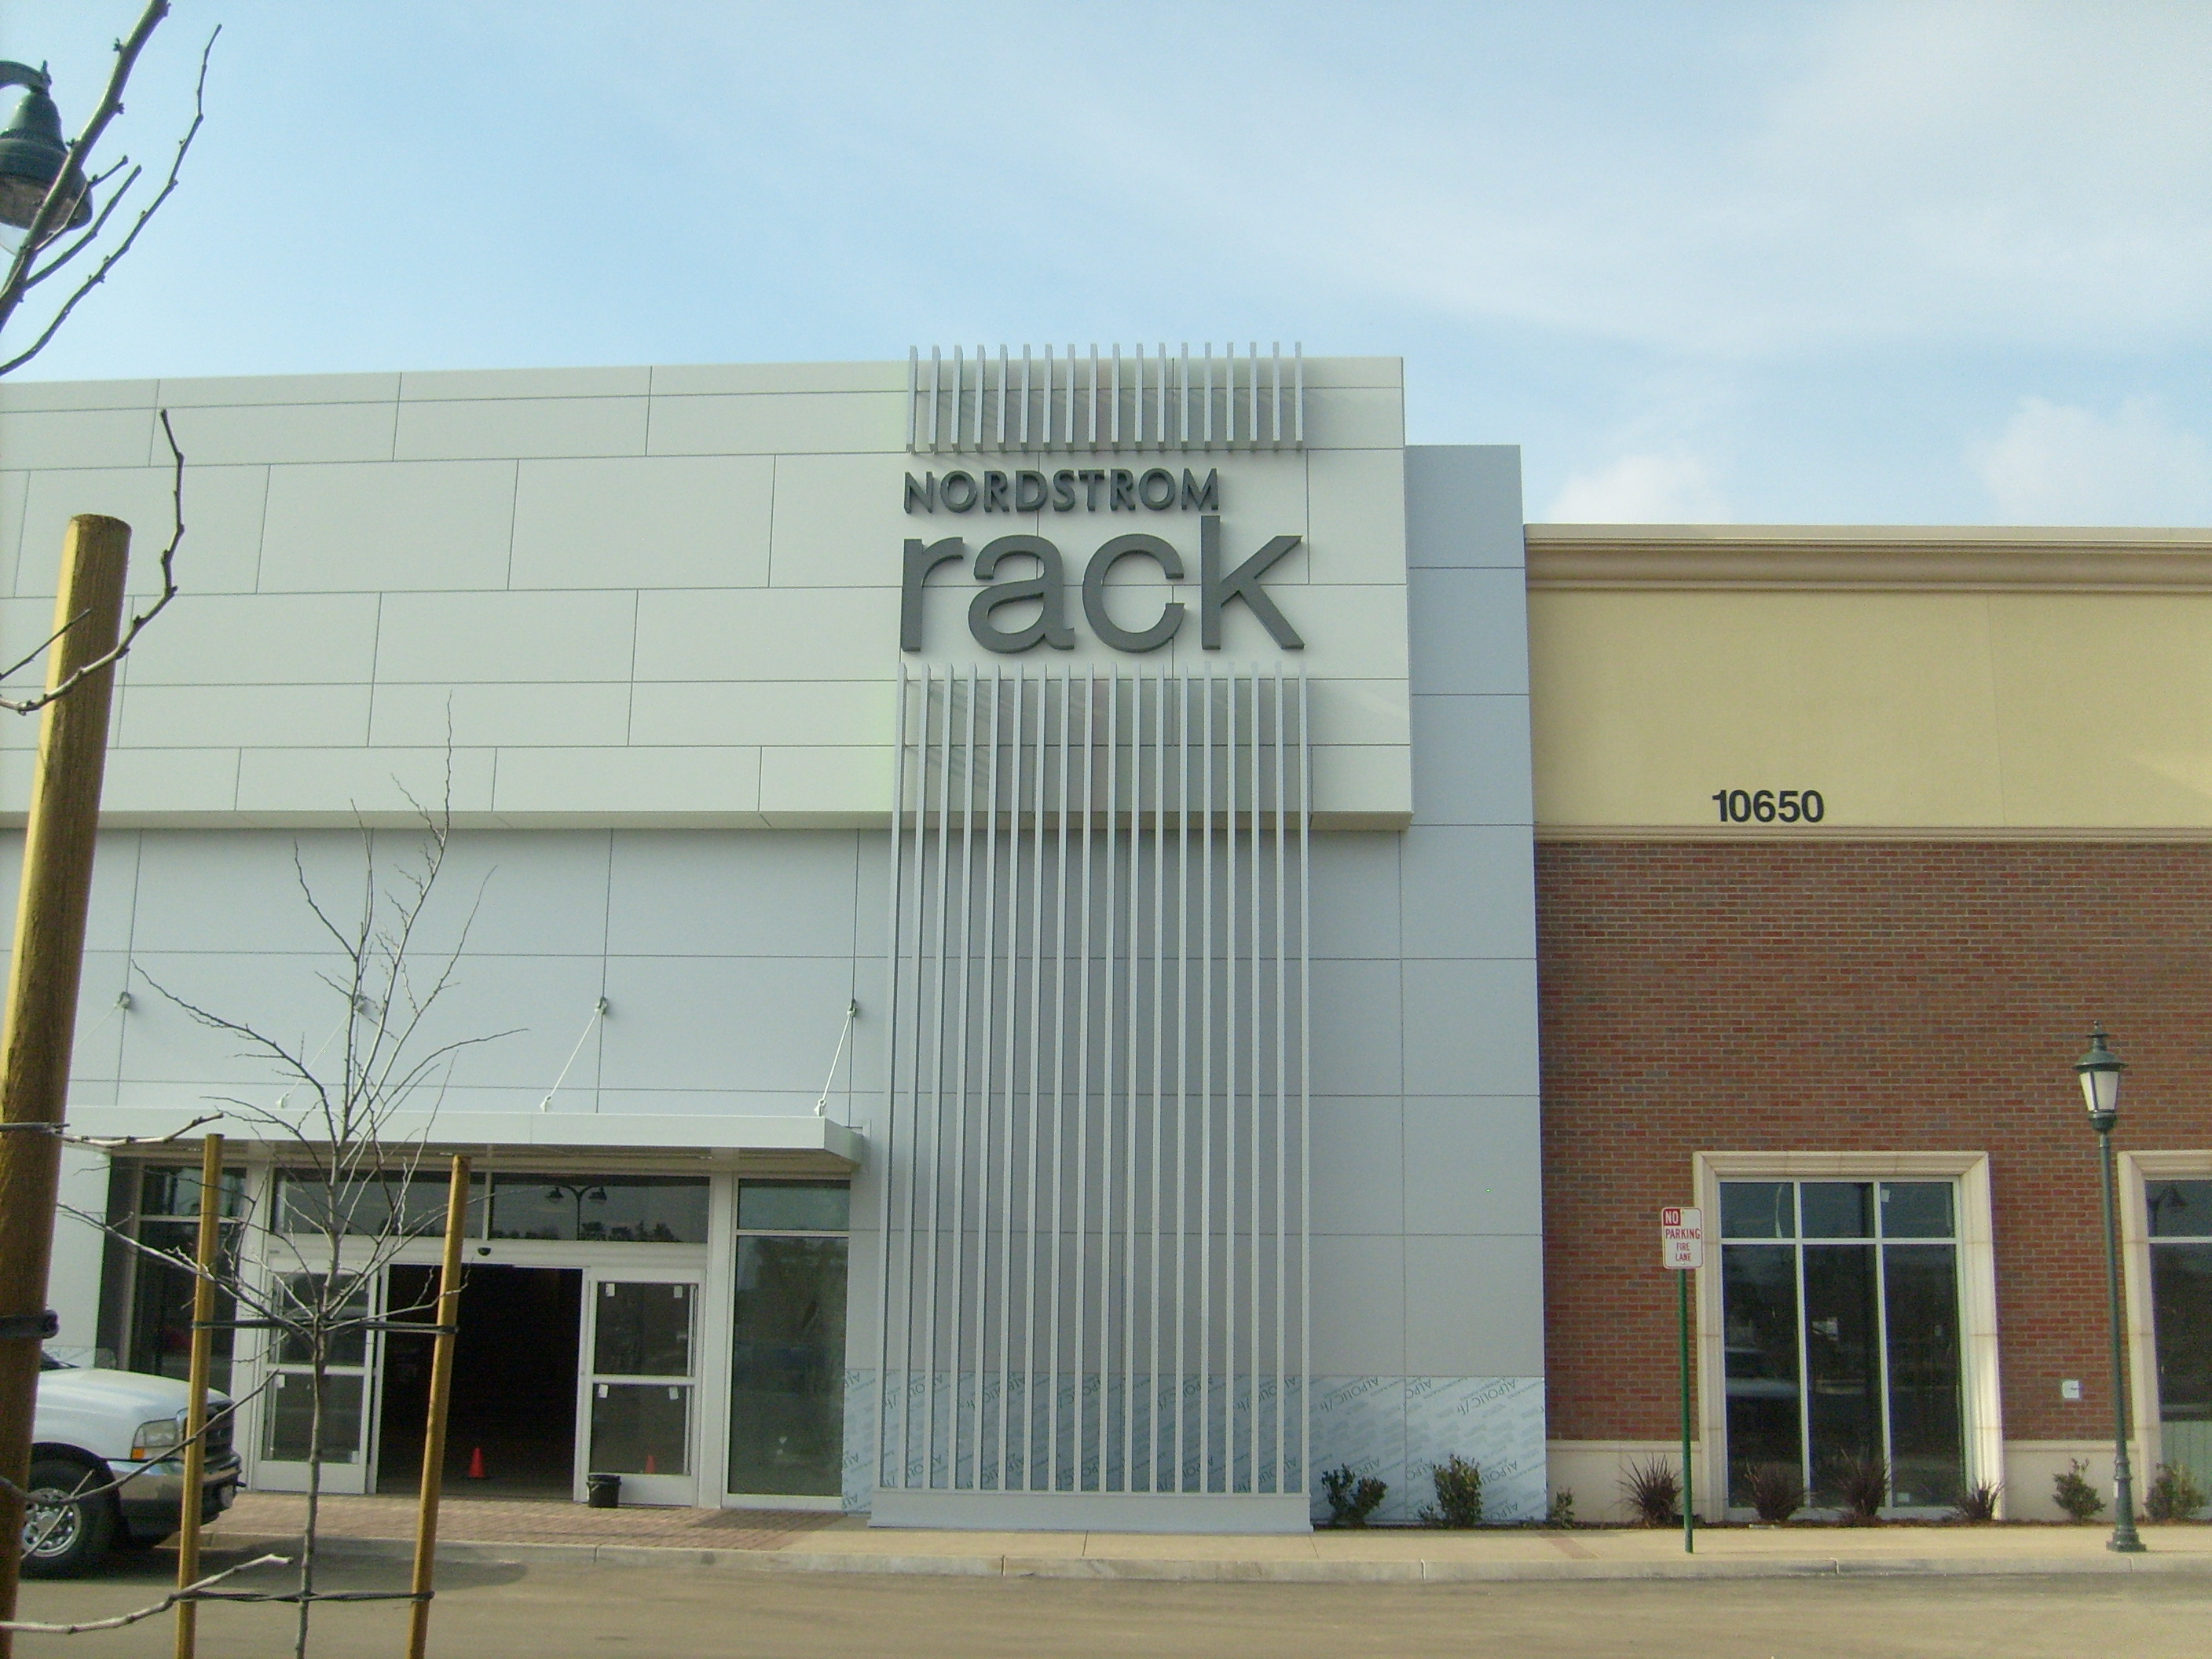 Nordstrom Rack (Riverwalk)